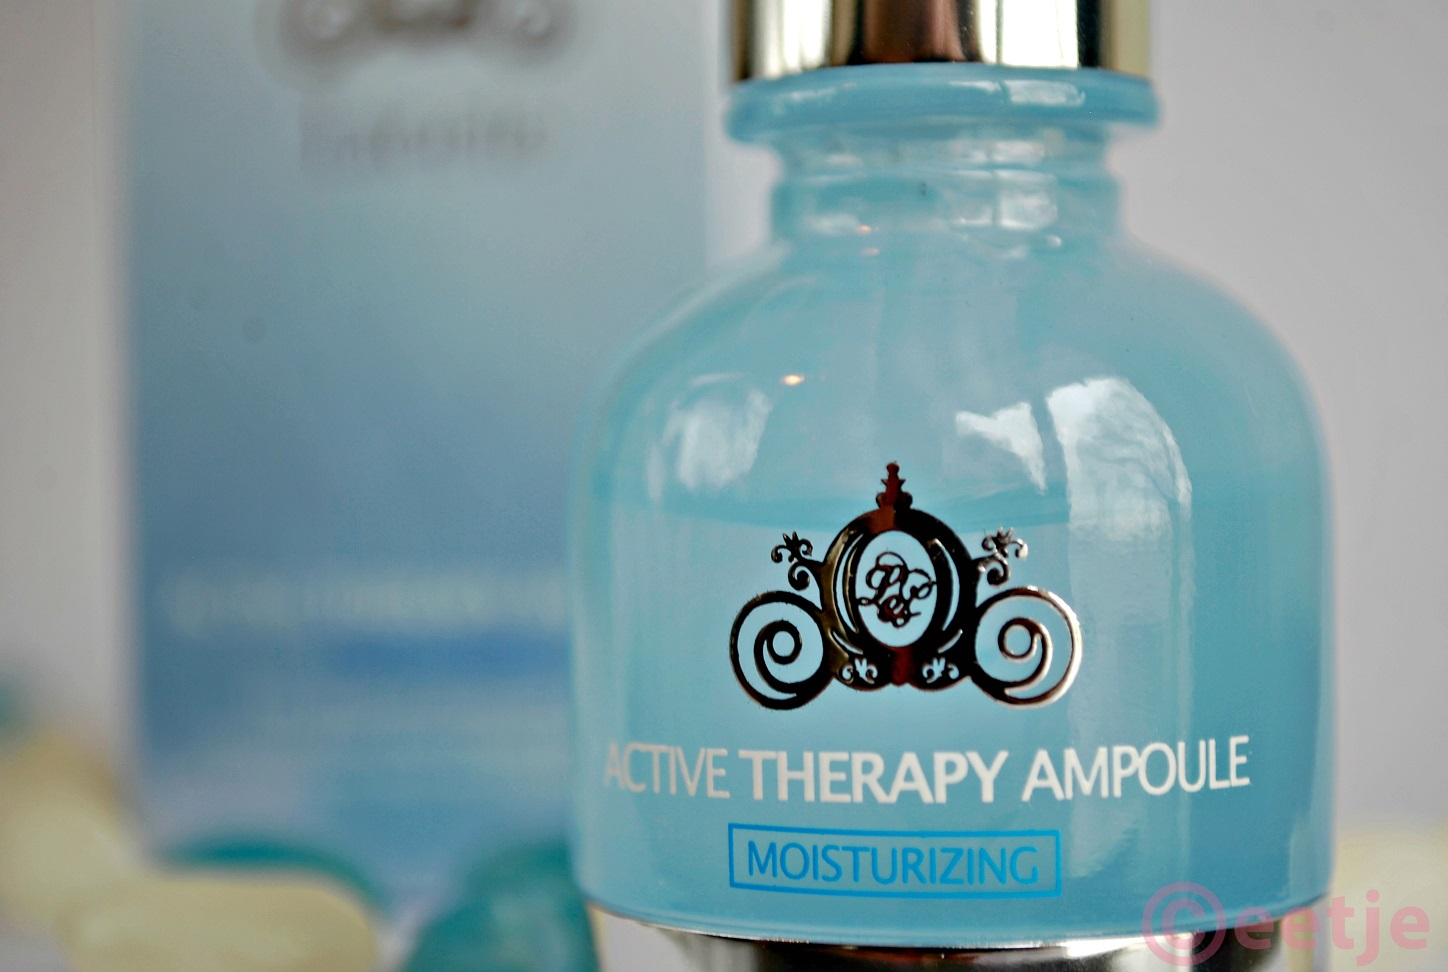 review Lioele Active Therapy Ampoule moisturizing